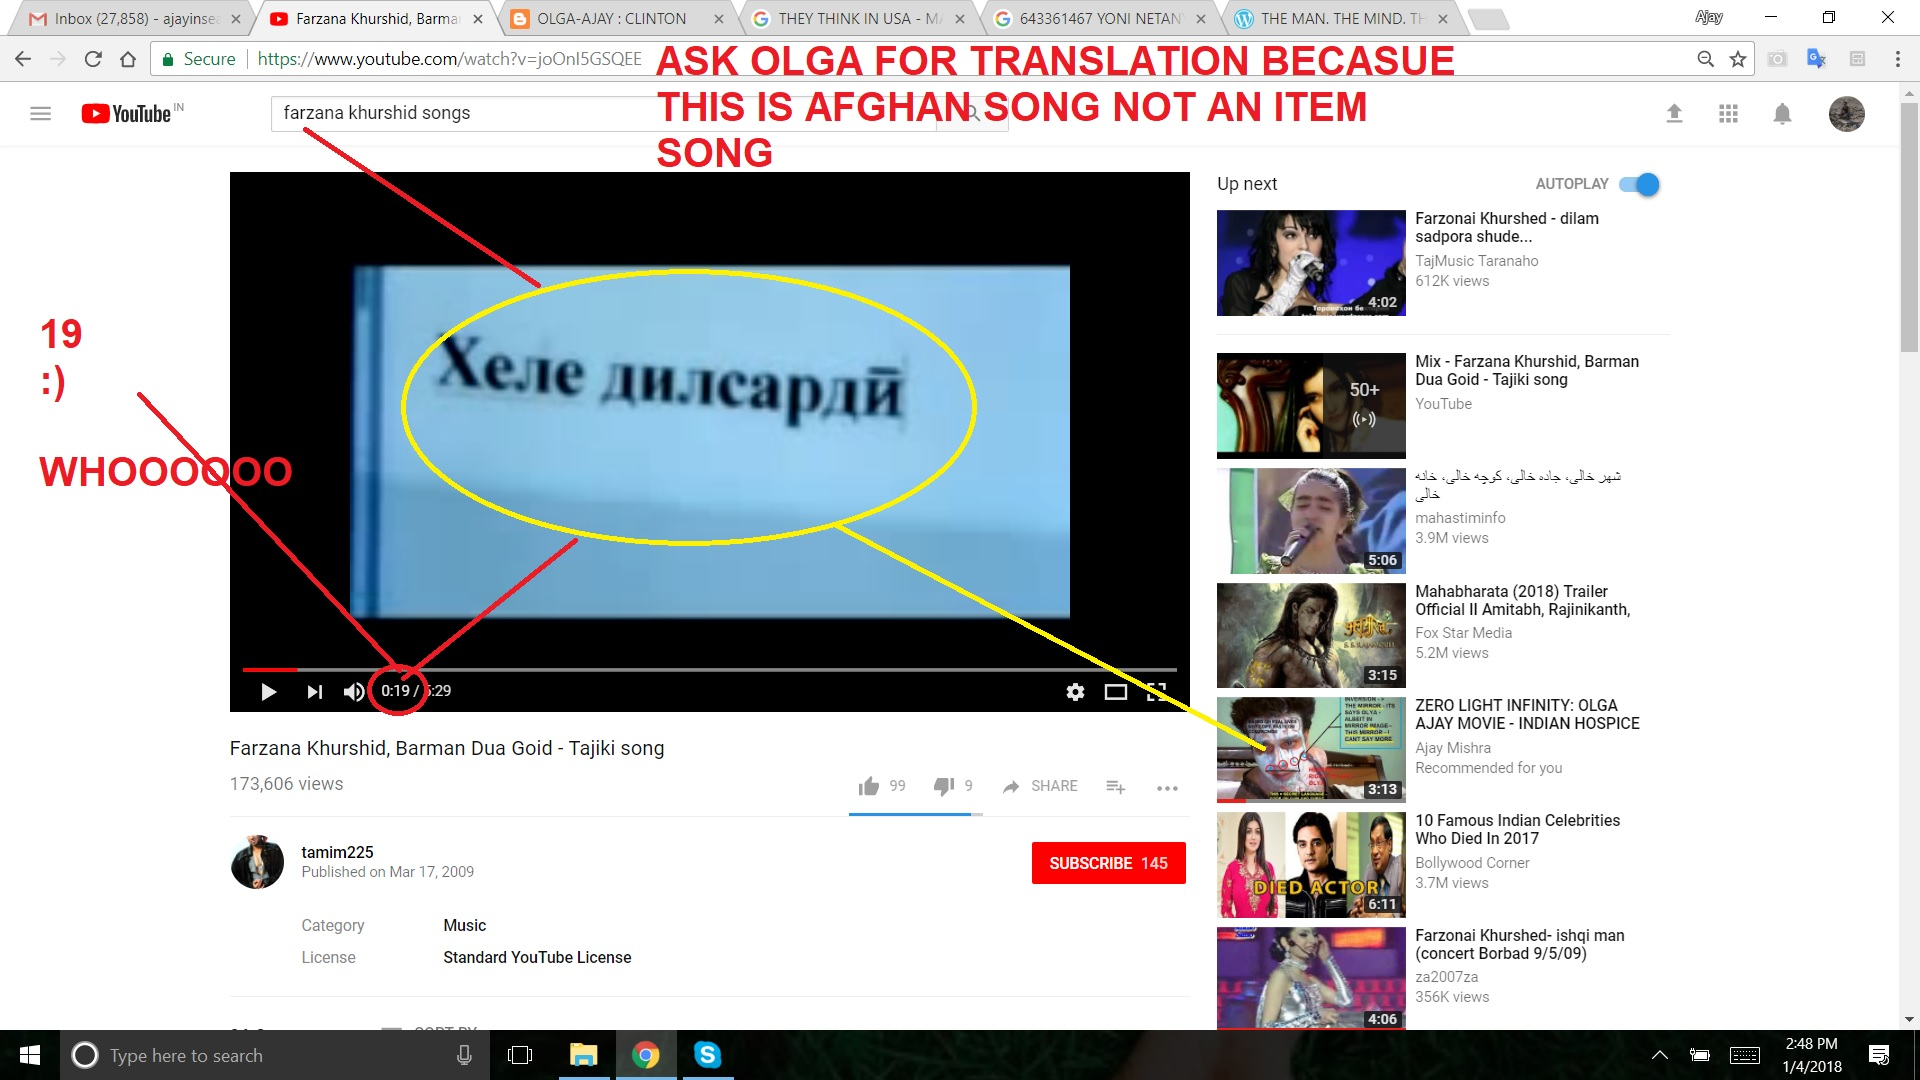 OLGA FARZANA SONG -ASK OLGA FOR TRANSLATION BECAUSE THIS IS AFGHAN SONG NOT AN ITEM SONG